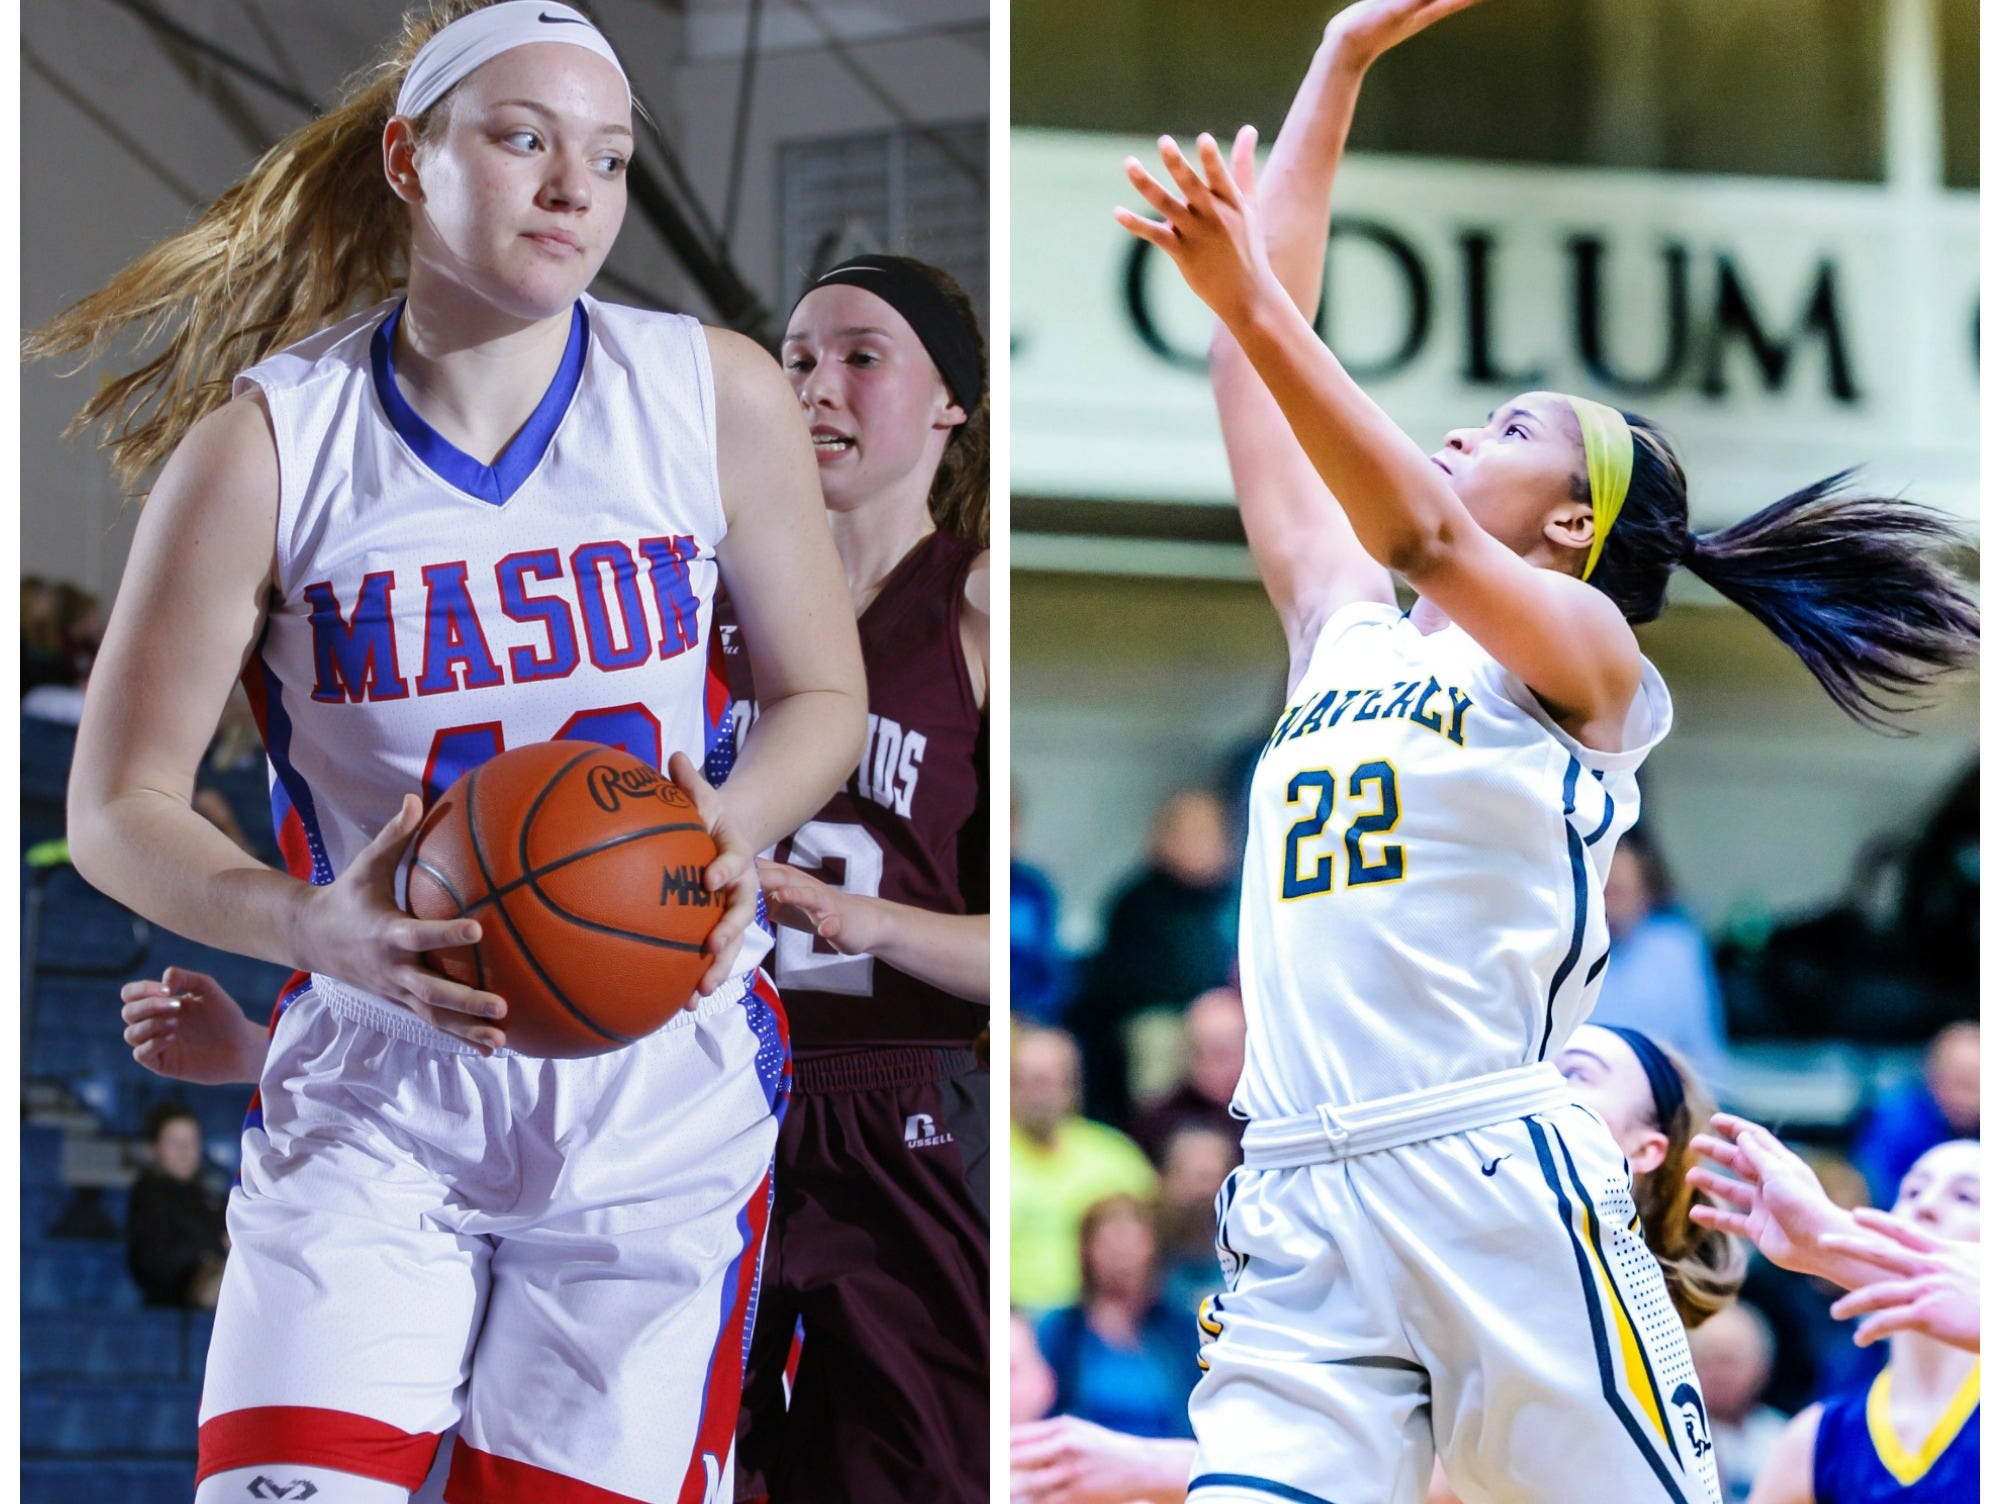 Mason's Autumn Kissman, left, and Waverly's Alisia Smith were Associated Press Class A all-state selections.